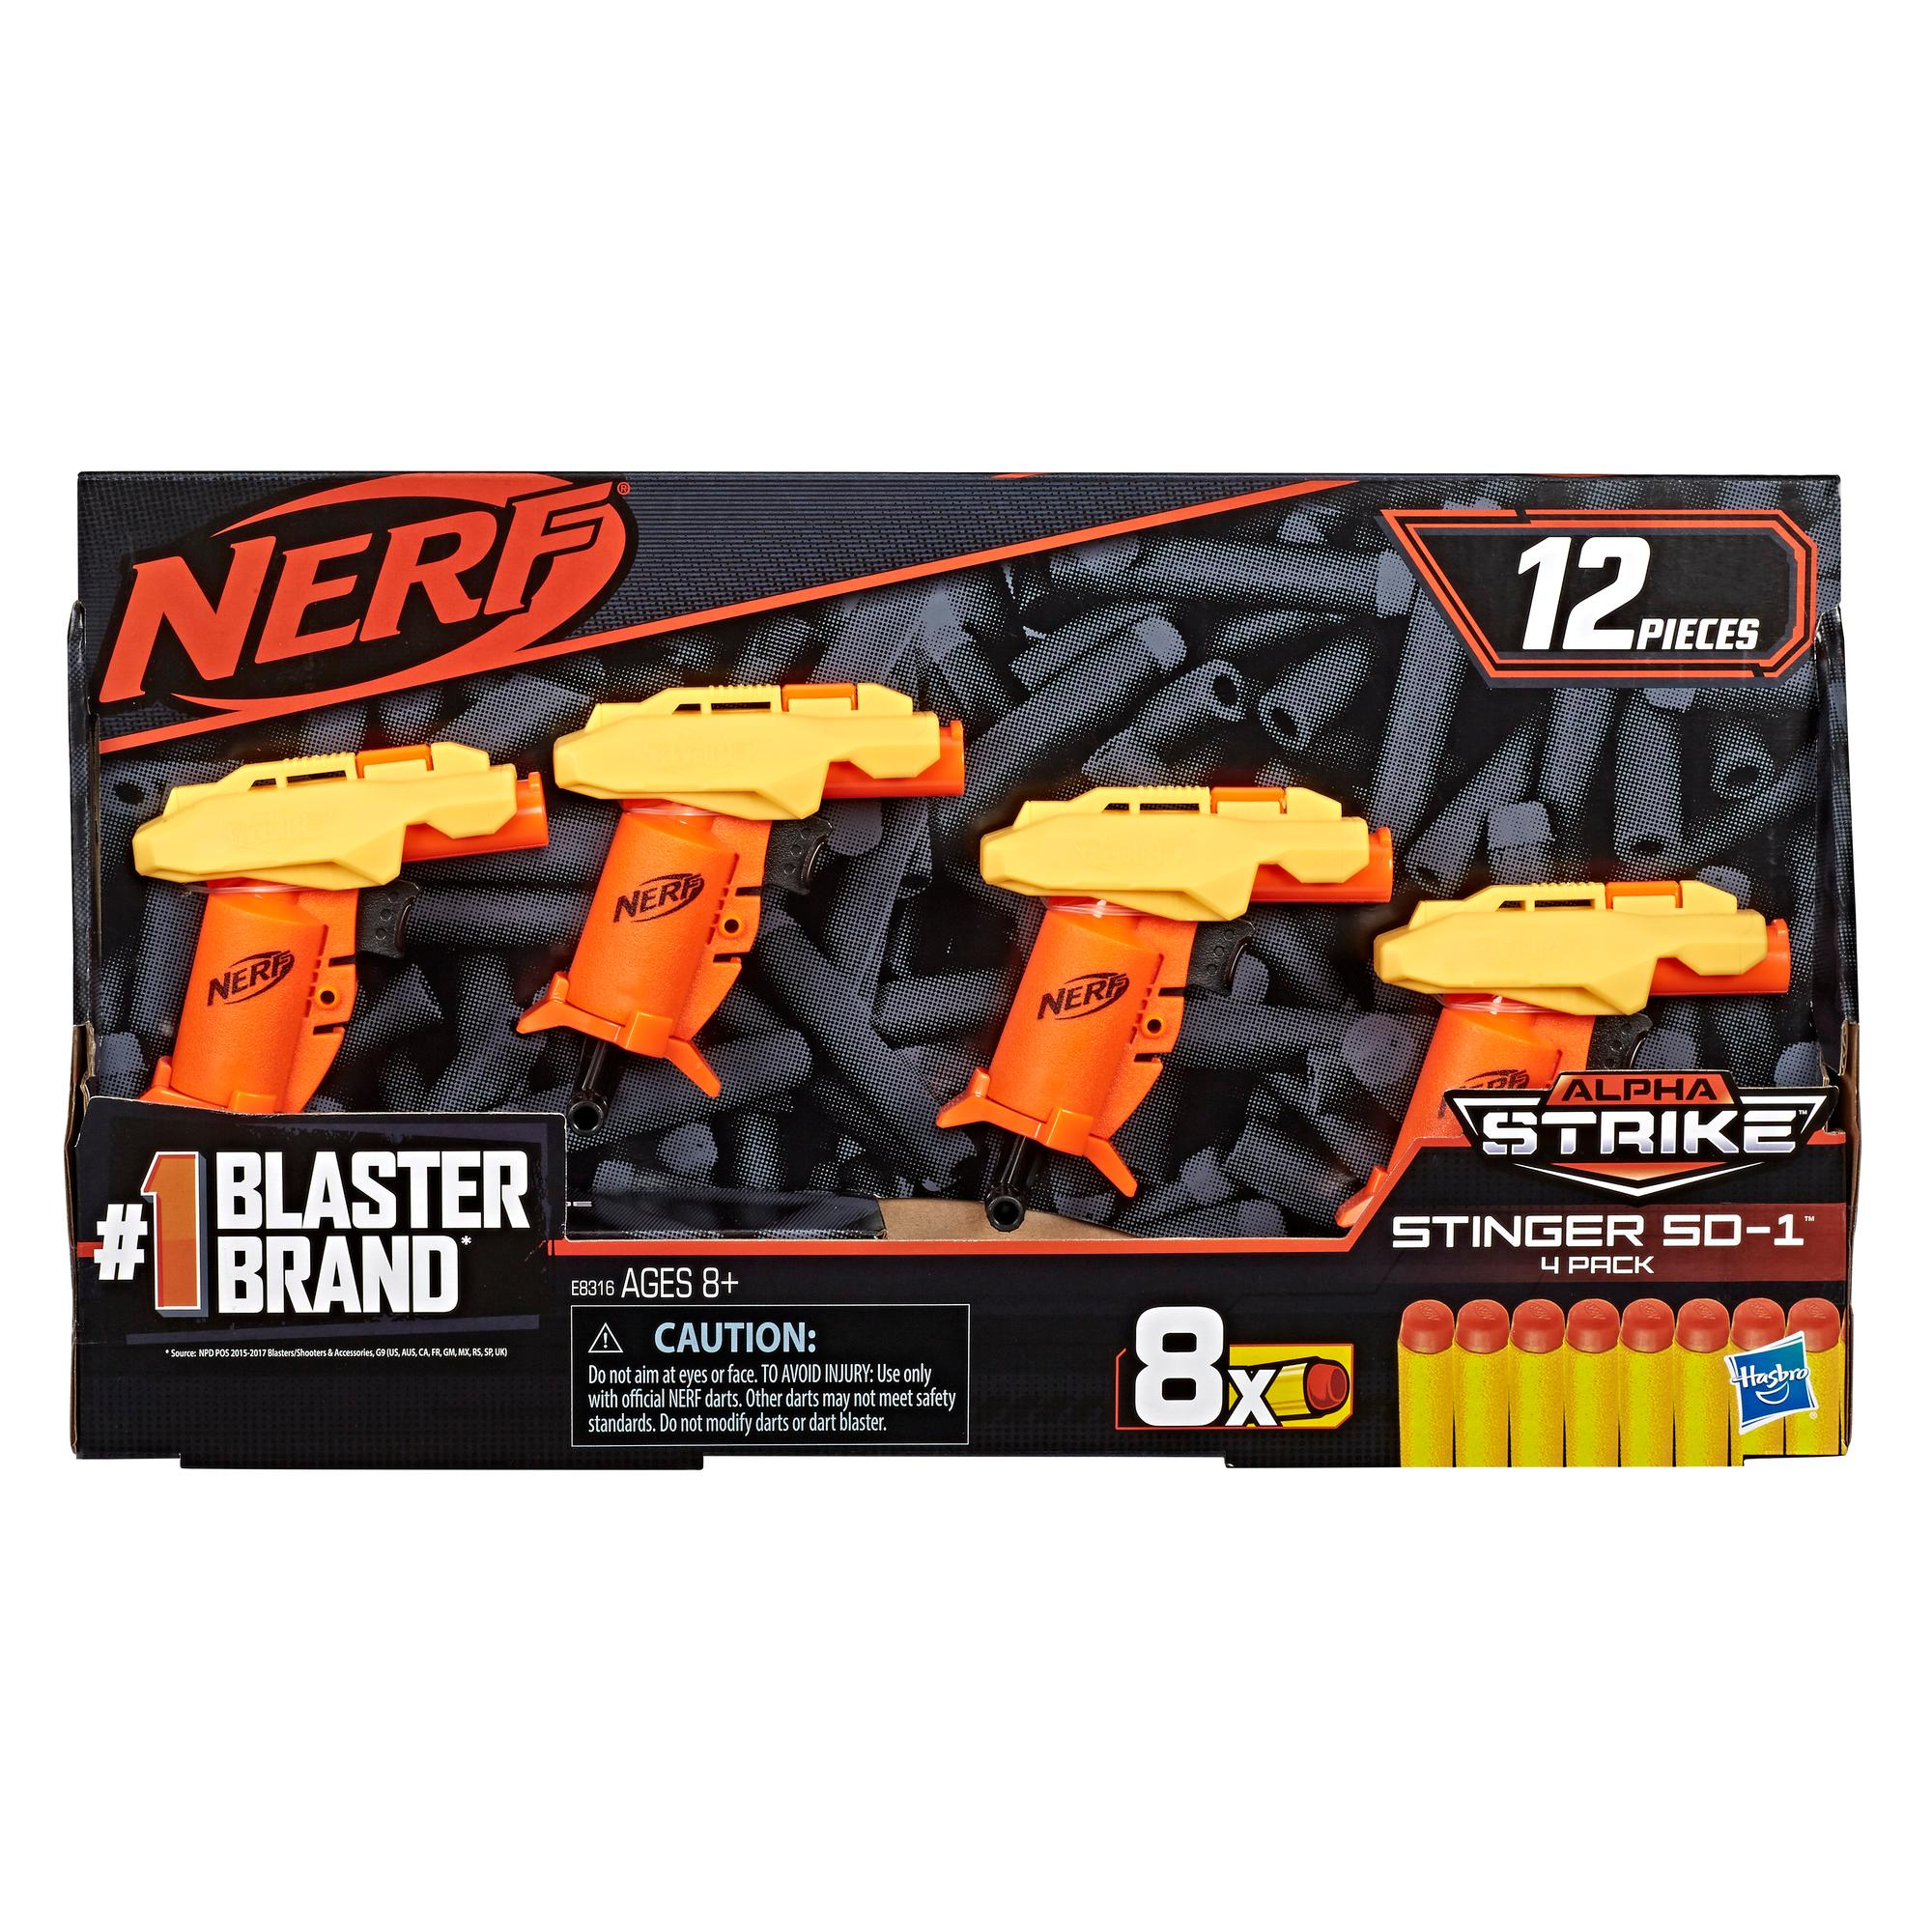 Nerf Alpha Strike Stinger SD-1 Blaster 4-Pack